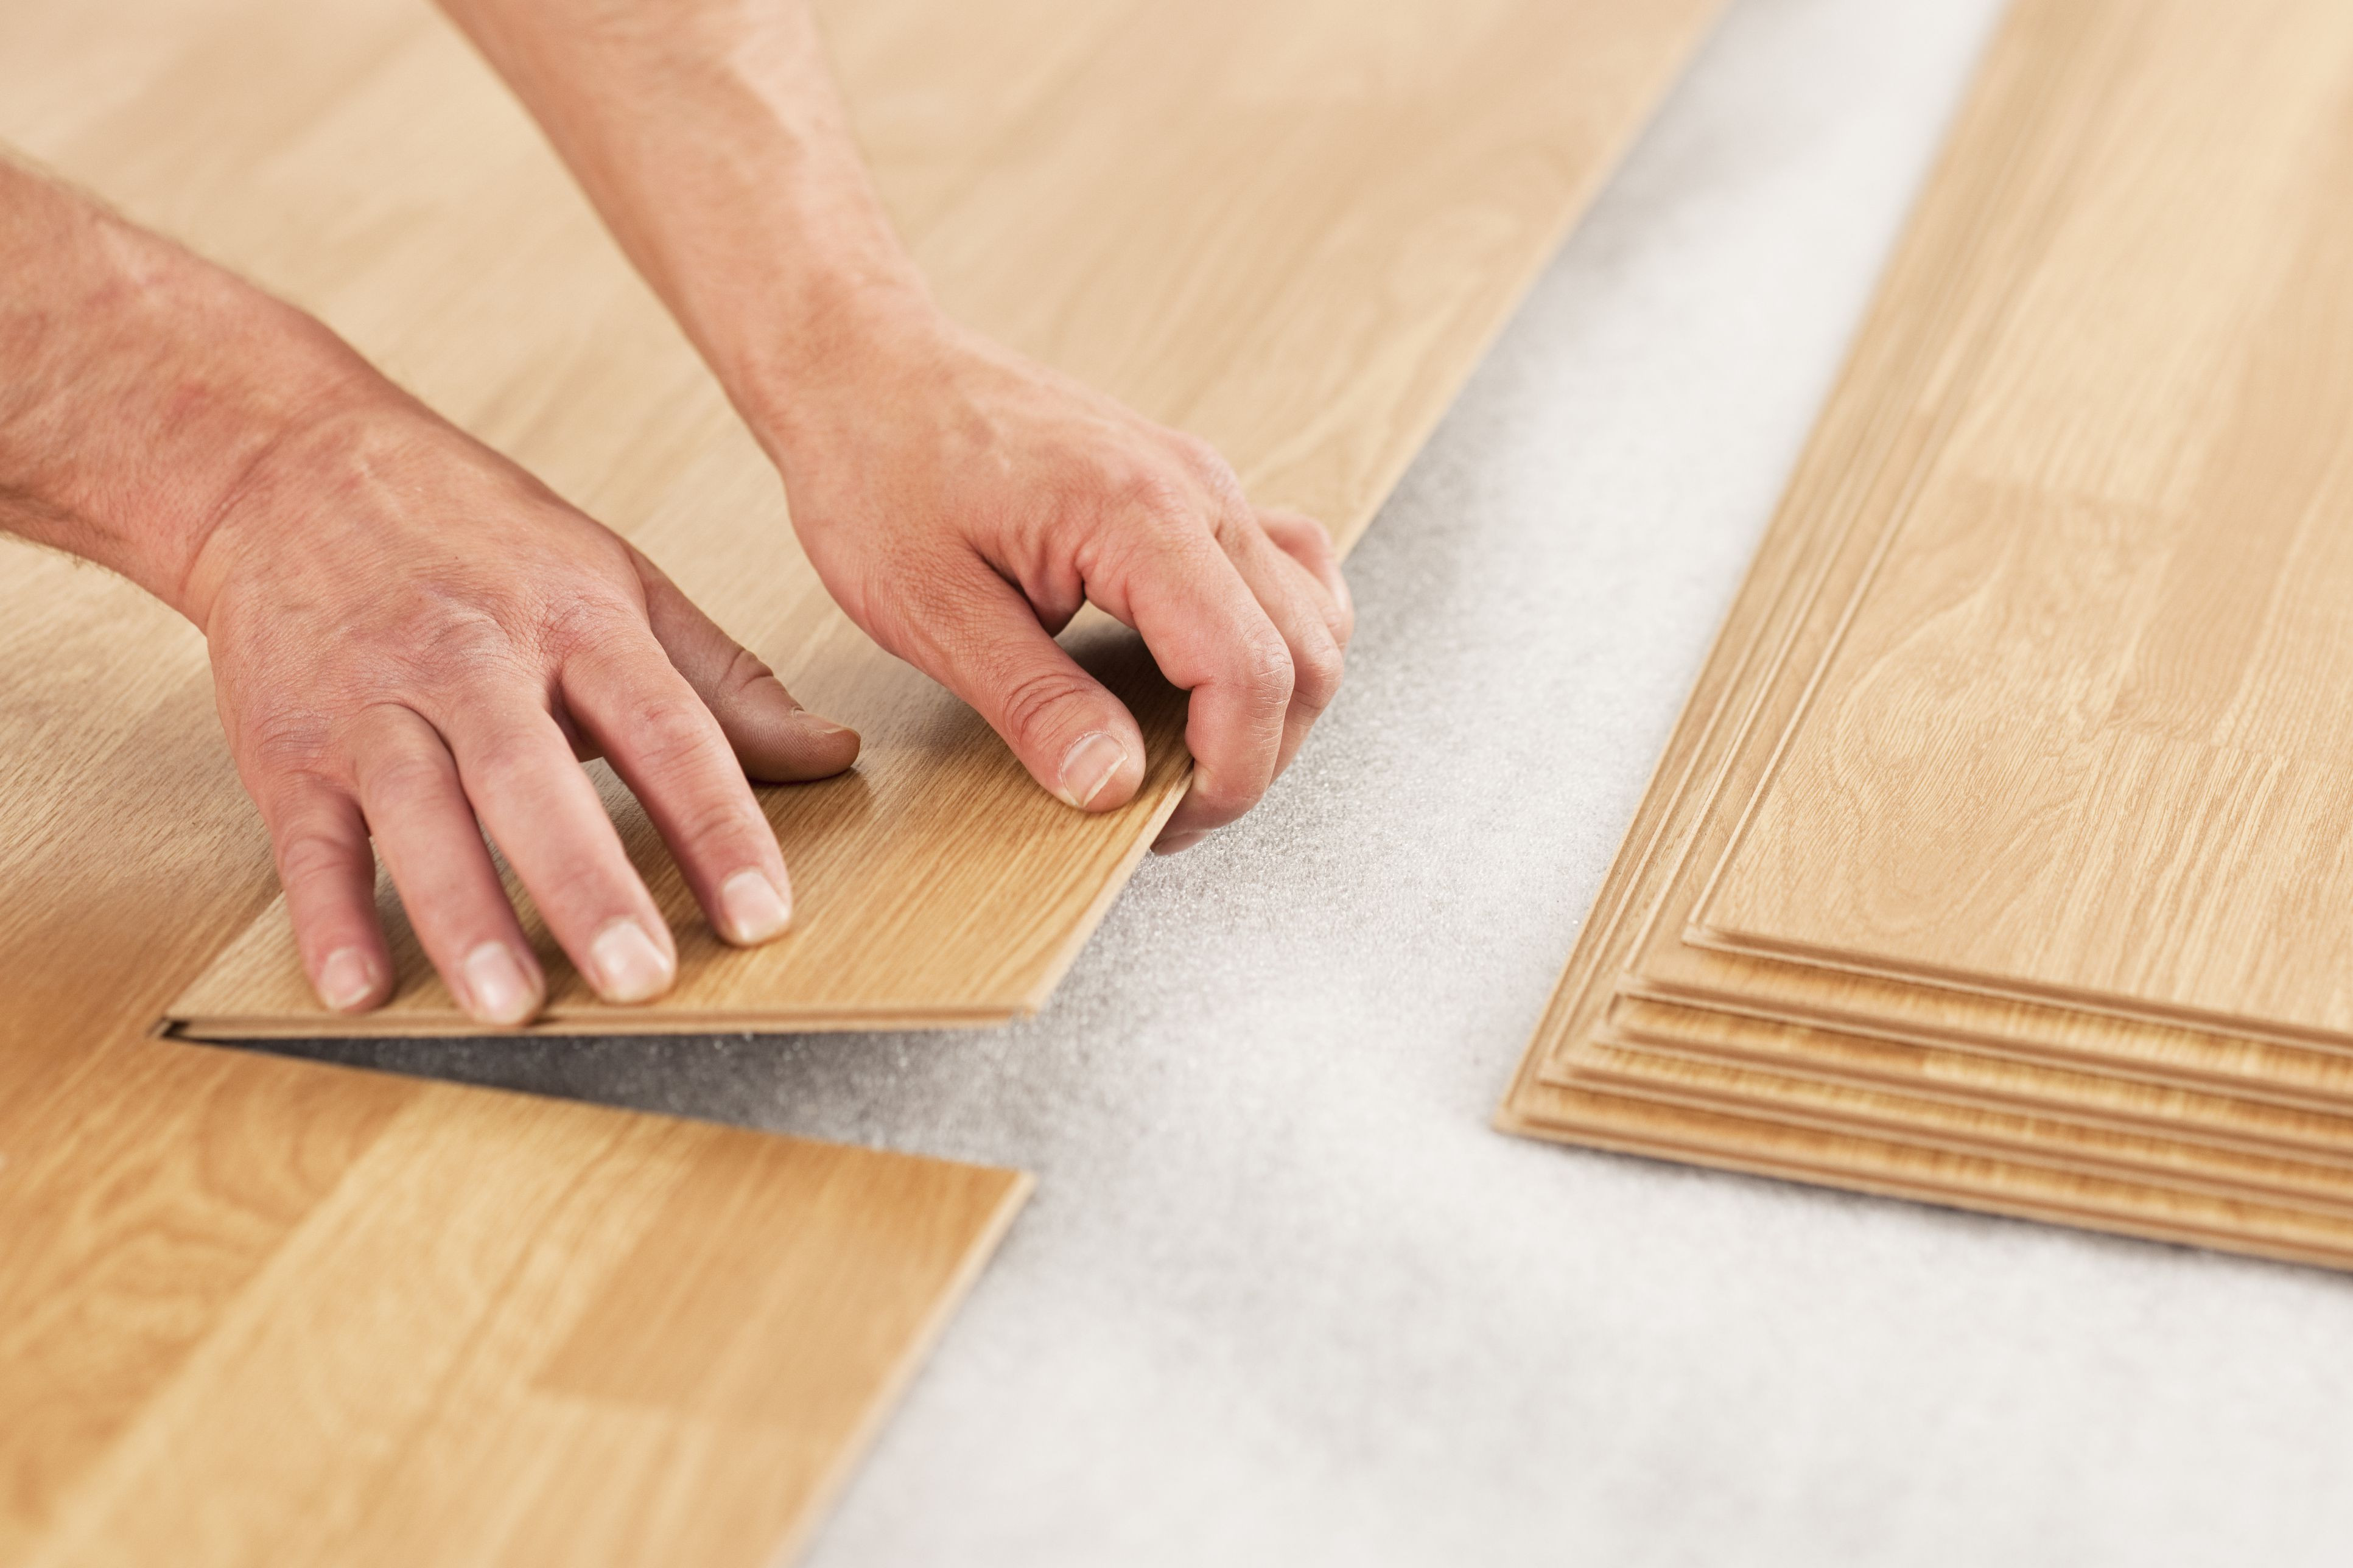 shaw bamboo hardwood flooring of how to reduce and prevent static on laminate flooring with picture of man s hands laying yellow laminate flooring 154961561 5875738e3df78c17b6de8341